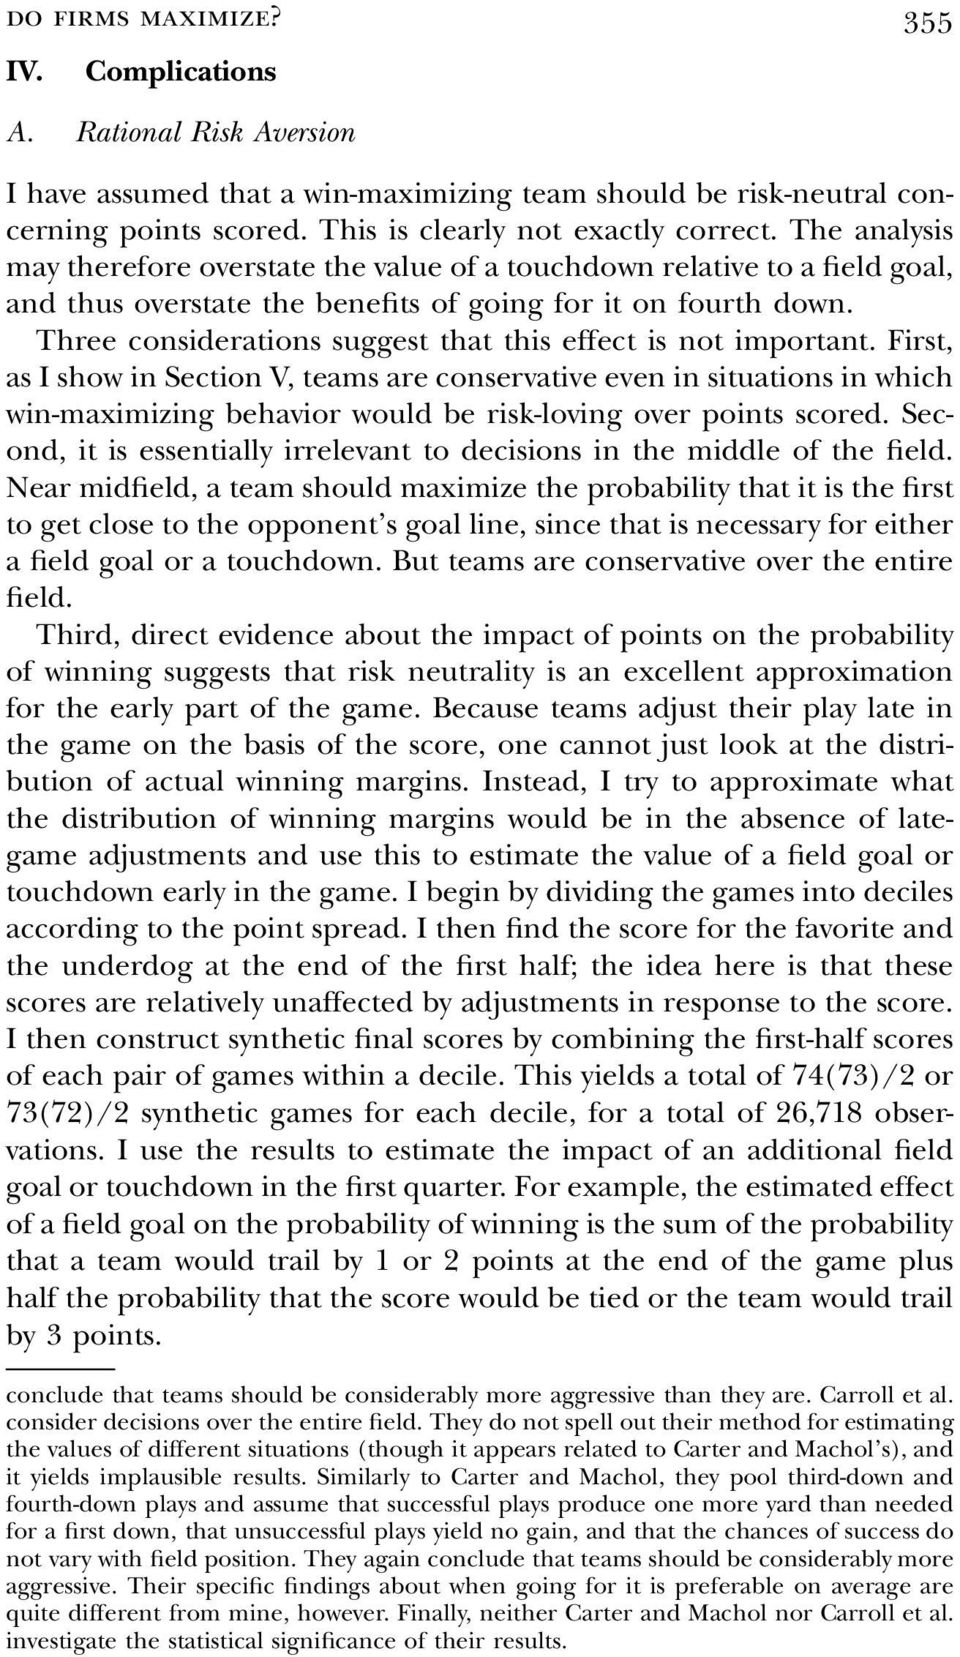 Three consderatons suggest that ths effect s not mportant. Frst, as I show n Secton V, teams are conservatve even n stuatons n whch wn-maxmzng behavor would be rsk-lovng over ponts scored.